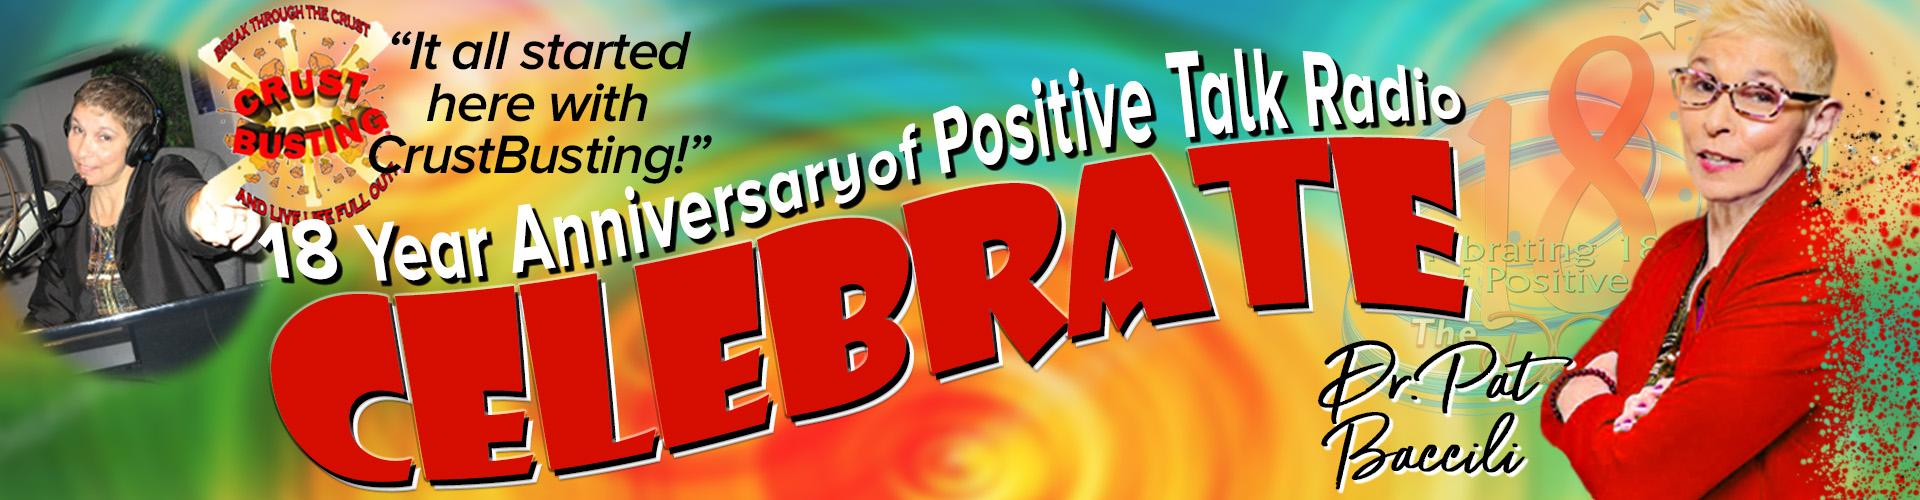 15 Year Anniversary Celebration of Positive Talk Radio with Dr. Pat Baccili